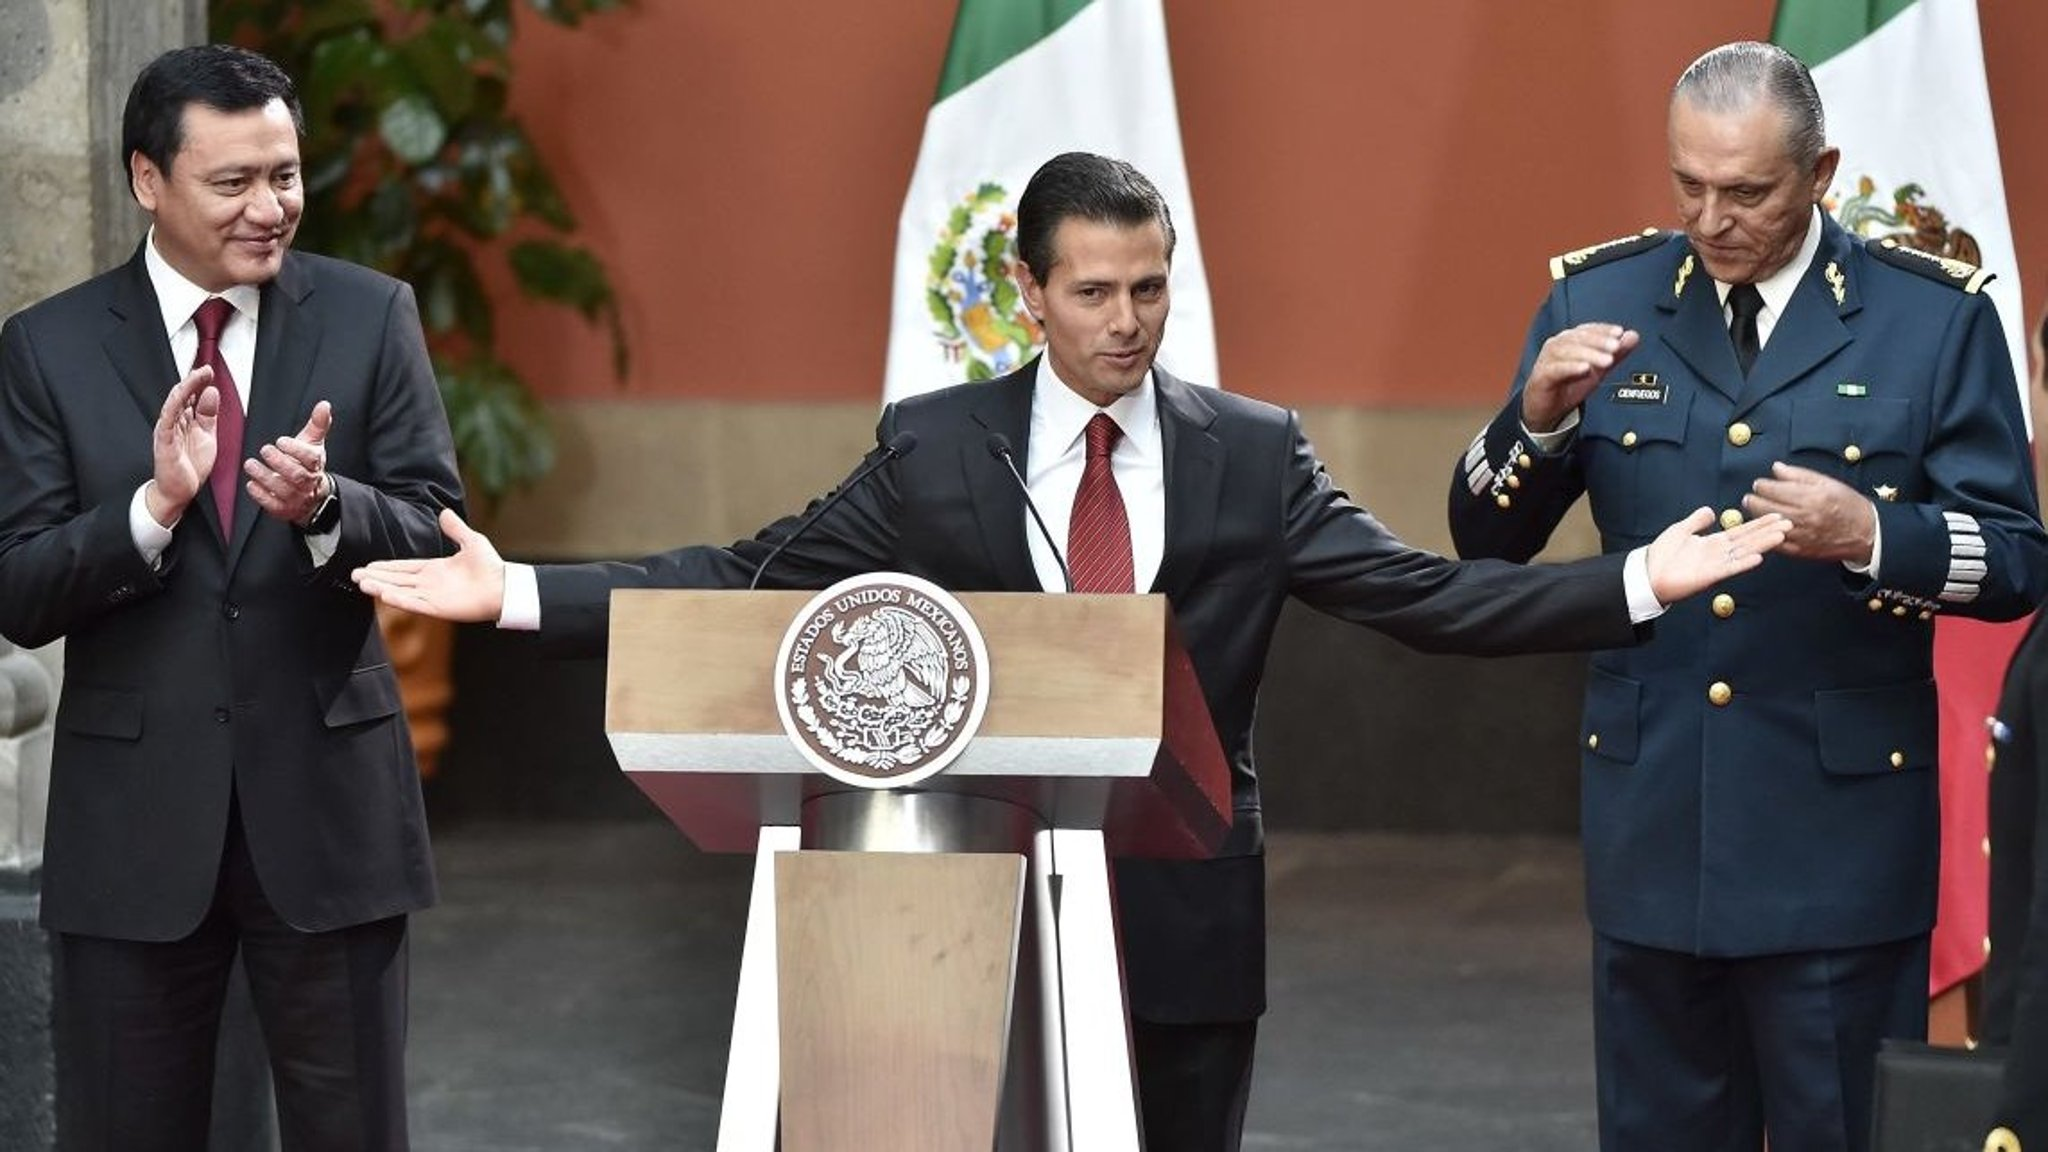 Mexicans Grow Impatient With Pea Nieto As Violence Flares